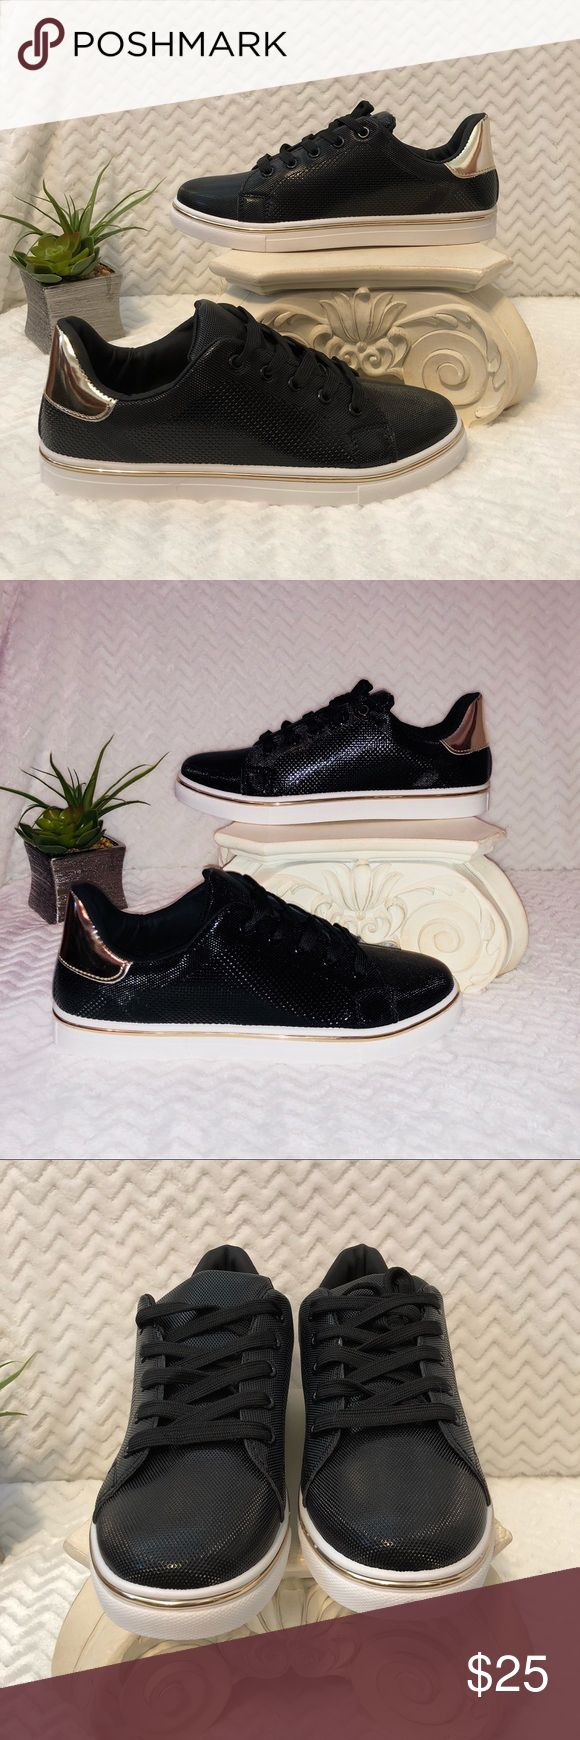 Qupid Mesh Style Metallic Sneakers New—Never been worn just without tags—Gold metallic backs and strip around the bottoms. has very tiny black marks on front as shown in pic from being stored. Great as an xmas gift! Bundle to save! Qupid Shoes Sneakers